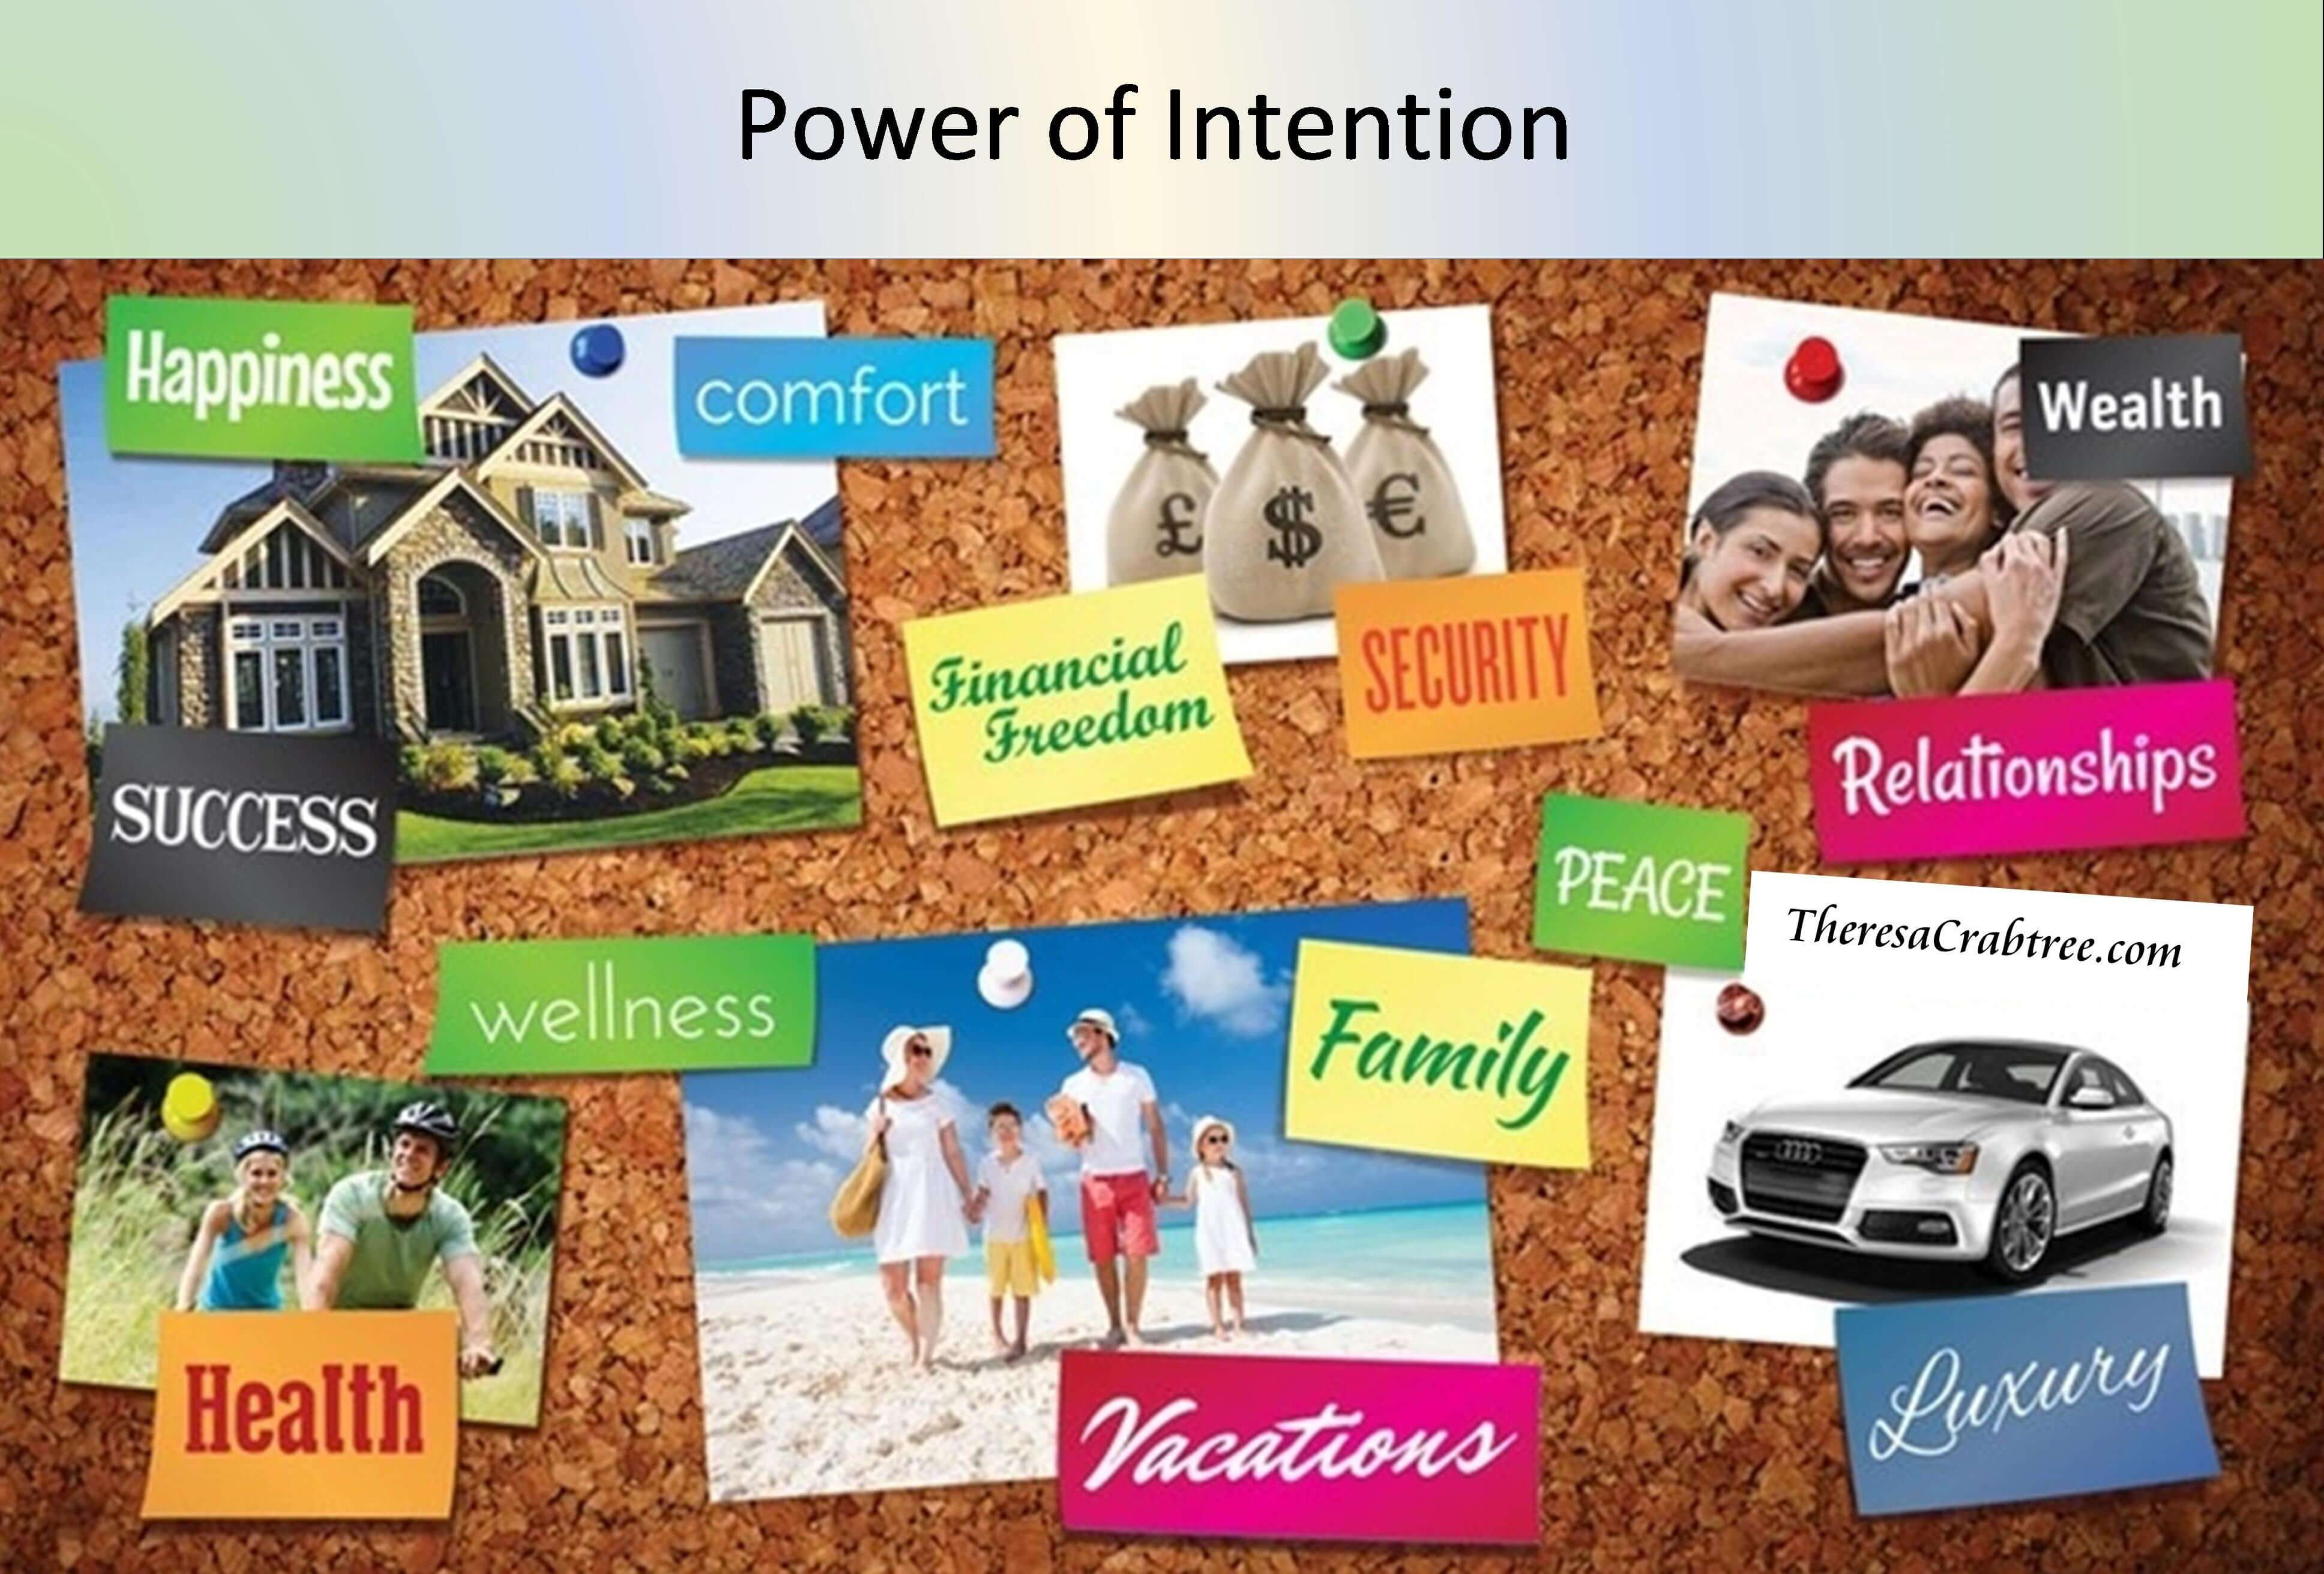 Soul Connection 228 ~ Power of Intention